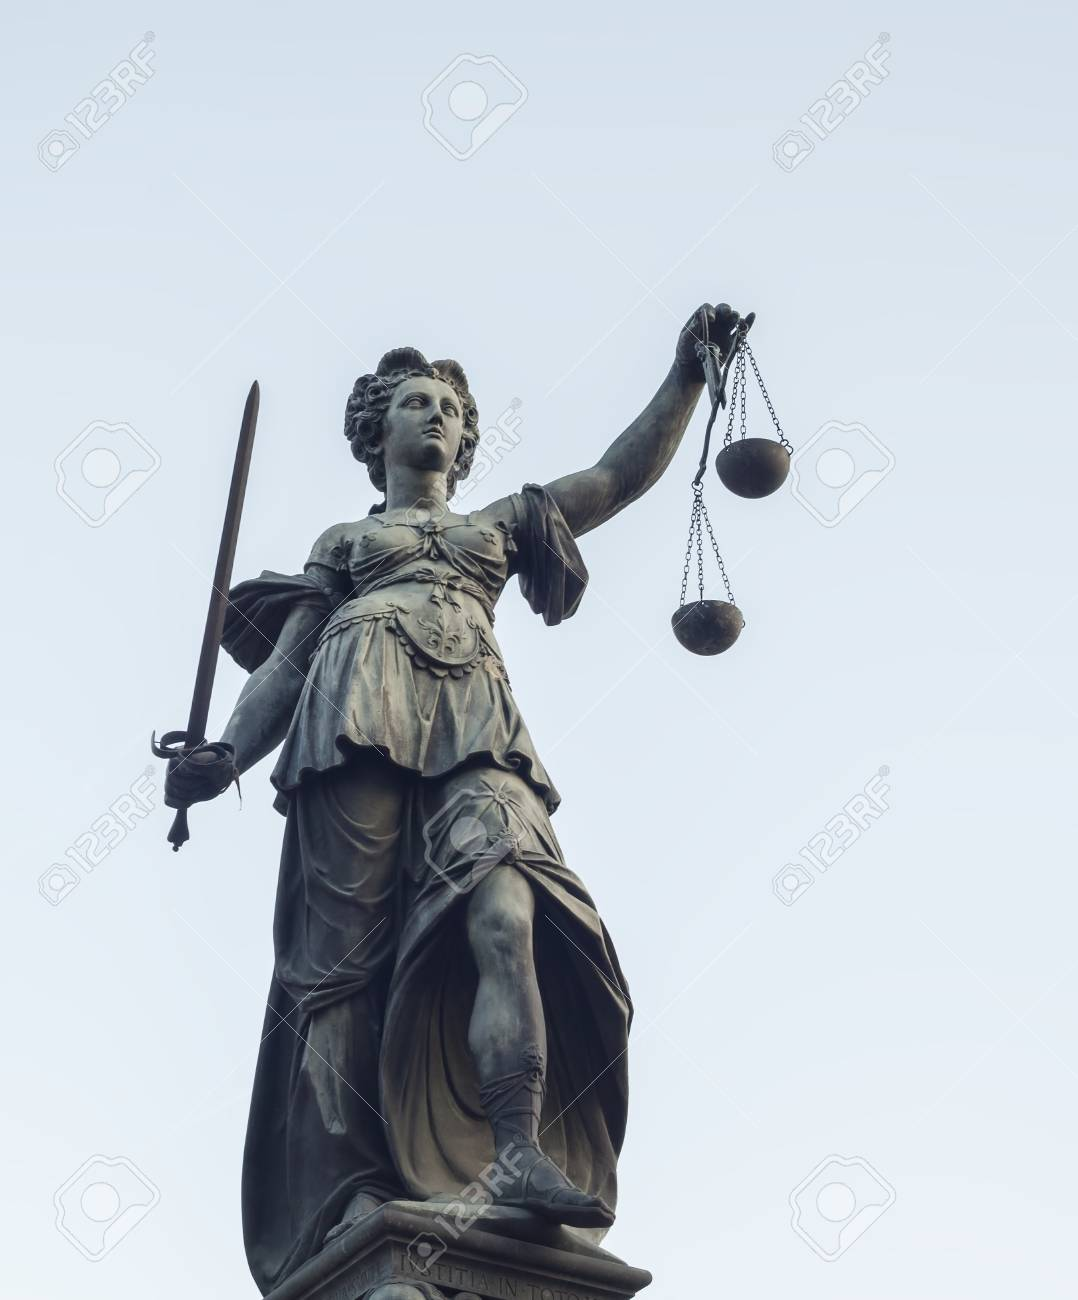 Lady-Justice-statue-in-Frankfort, World's most corrupt judicial system, Behind Enemy Lines